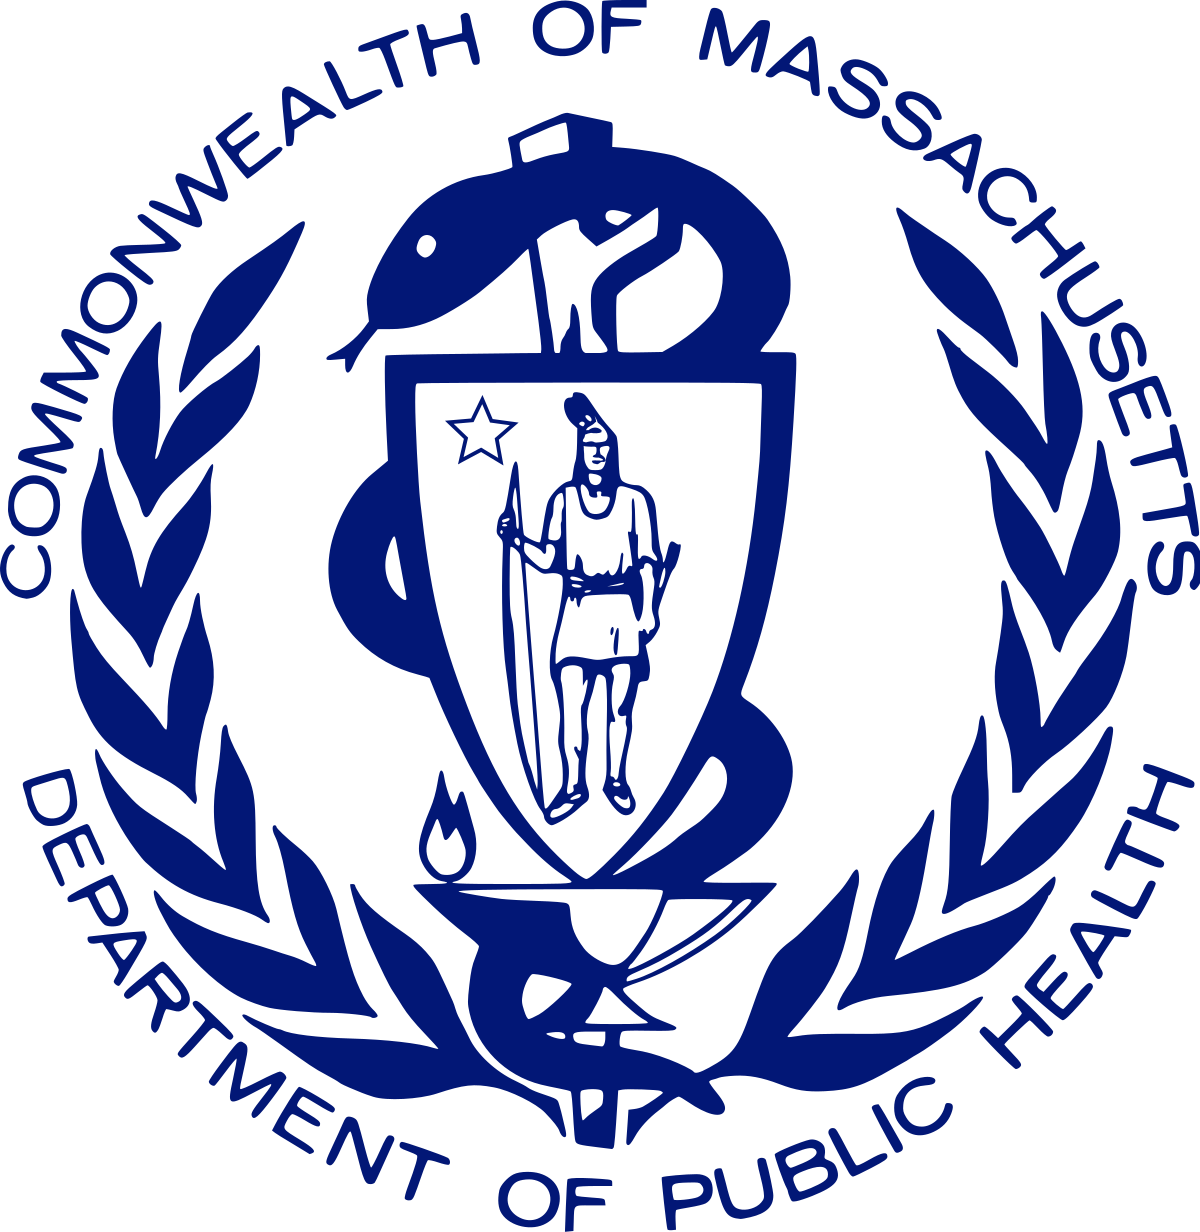 Massachusetts Department of Public Health seal